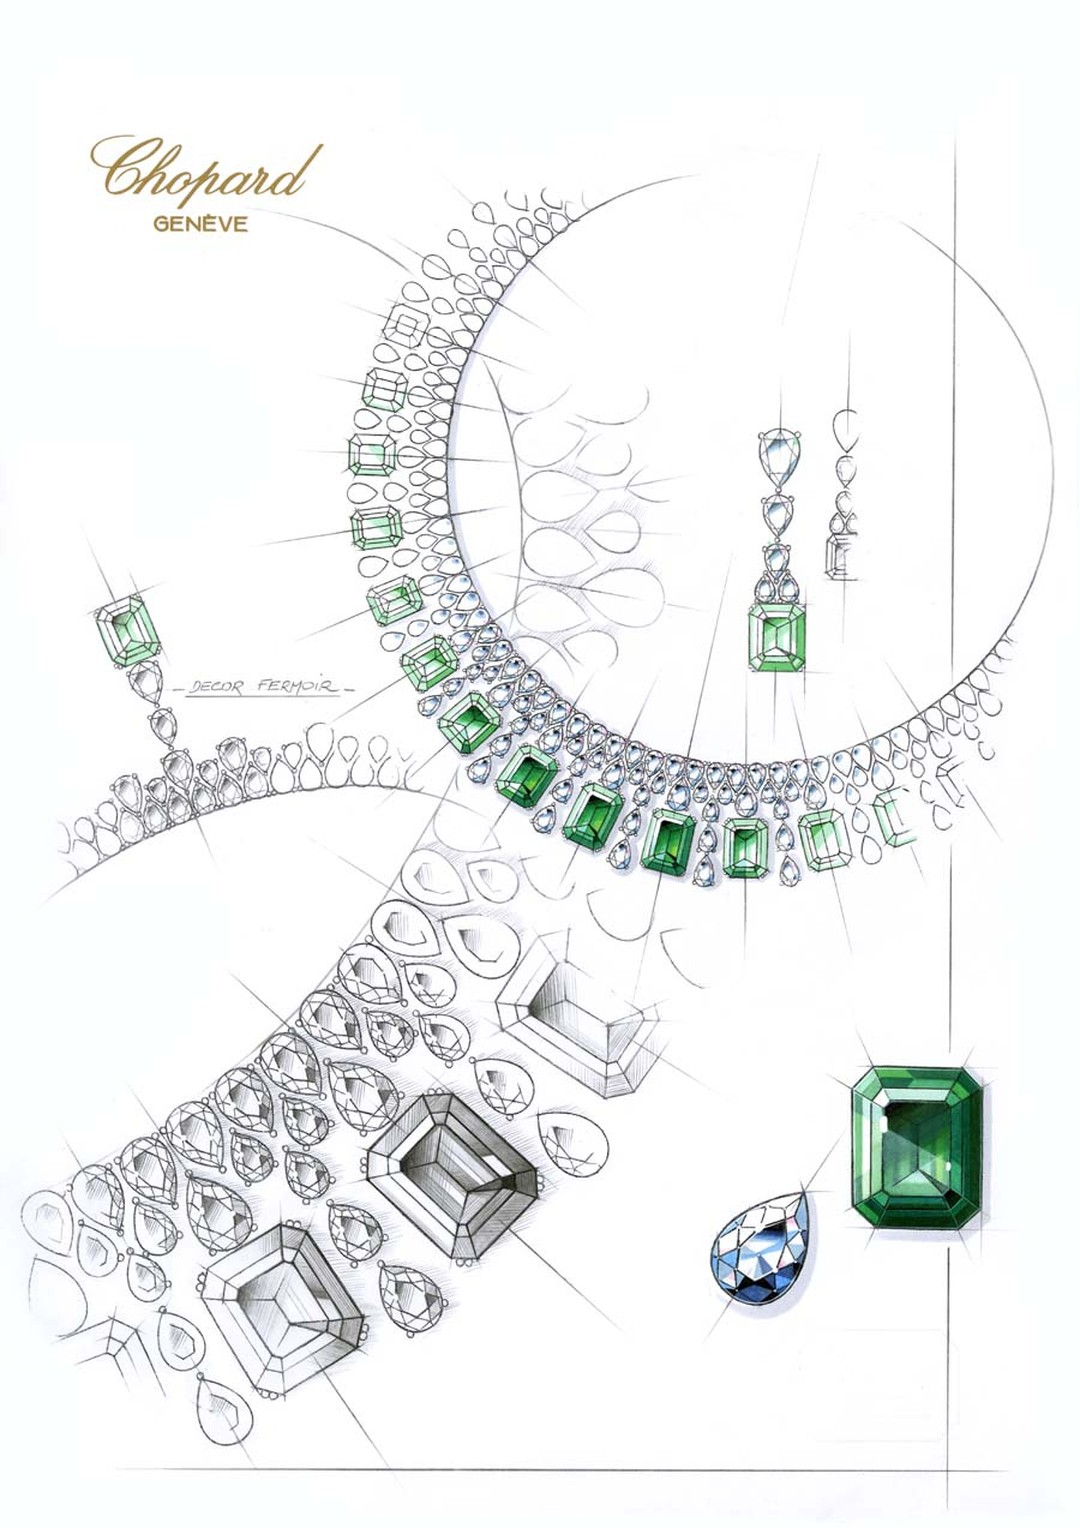 819356-1001 Sketch Emerald Necklace from the Red Carpet Collection 2013Chopard.jpg